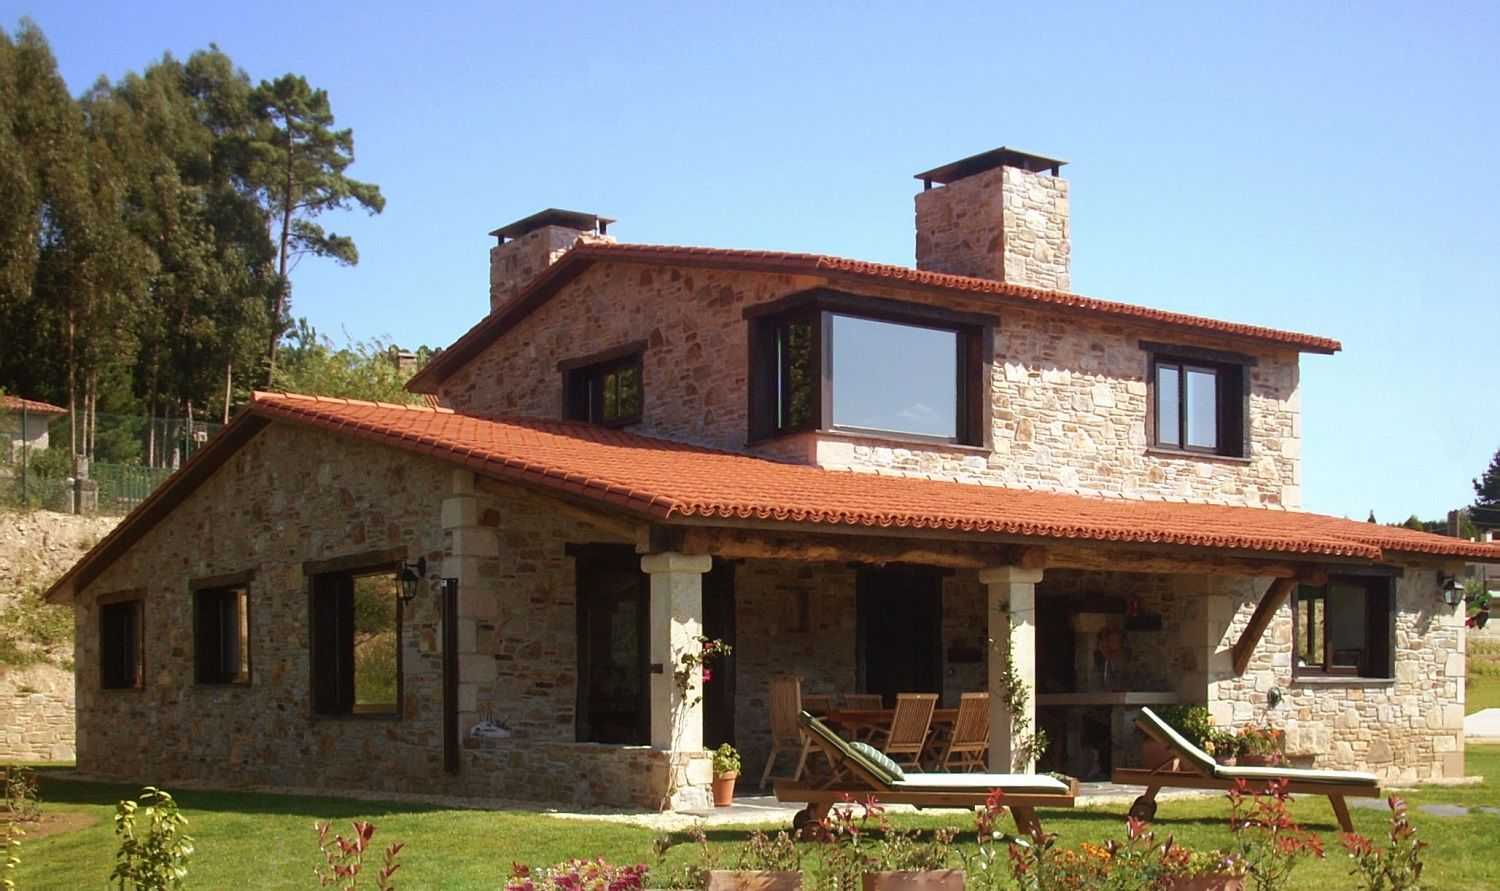 Construcciones r sticas gallegas casas country house for Construccion casas rusticas